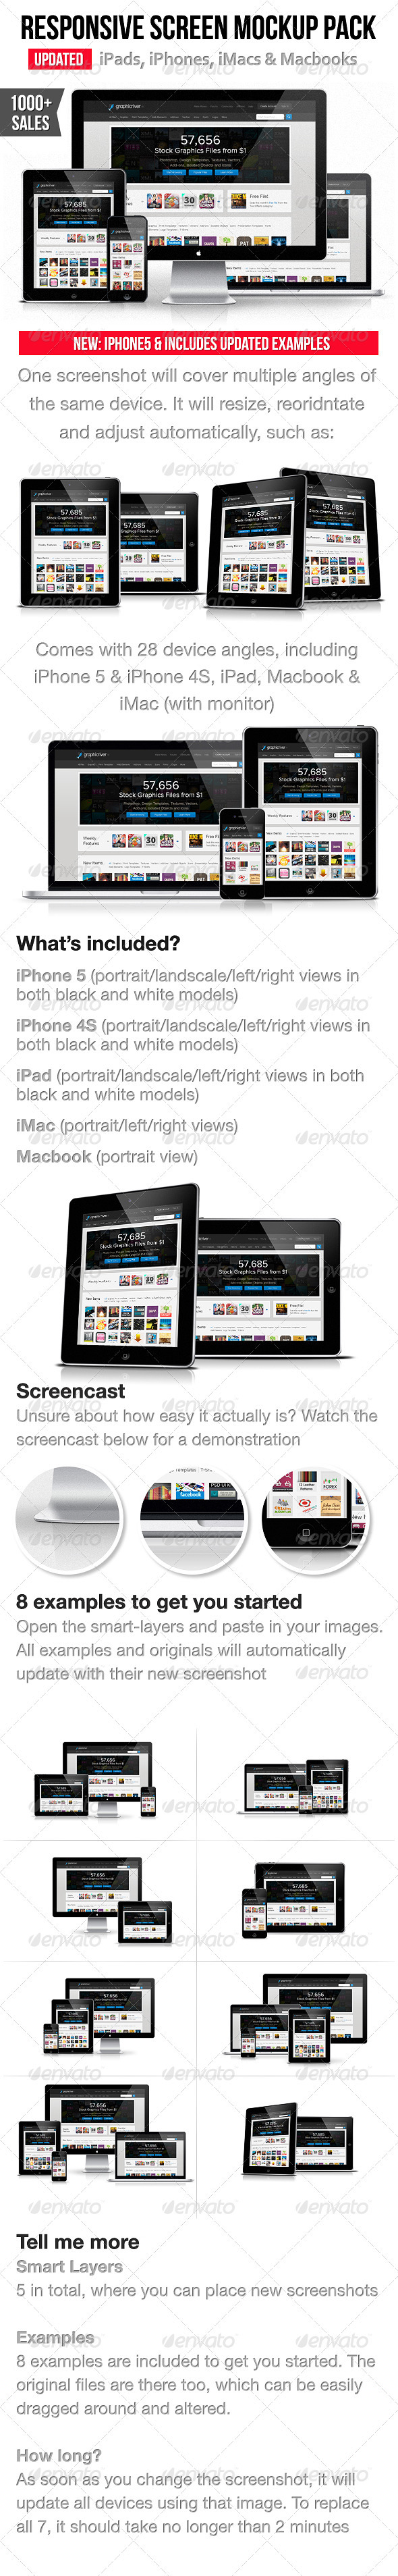 Responsive Screen Mockup Pack - Multiple Displays